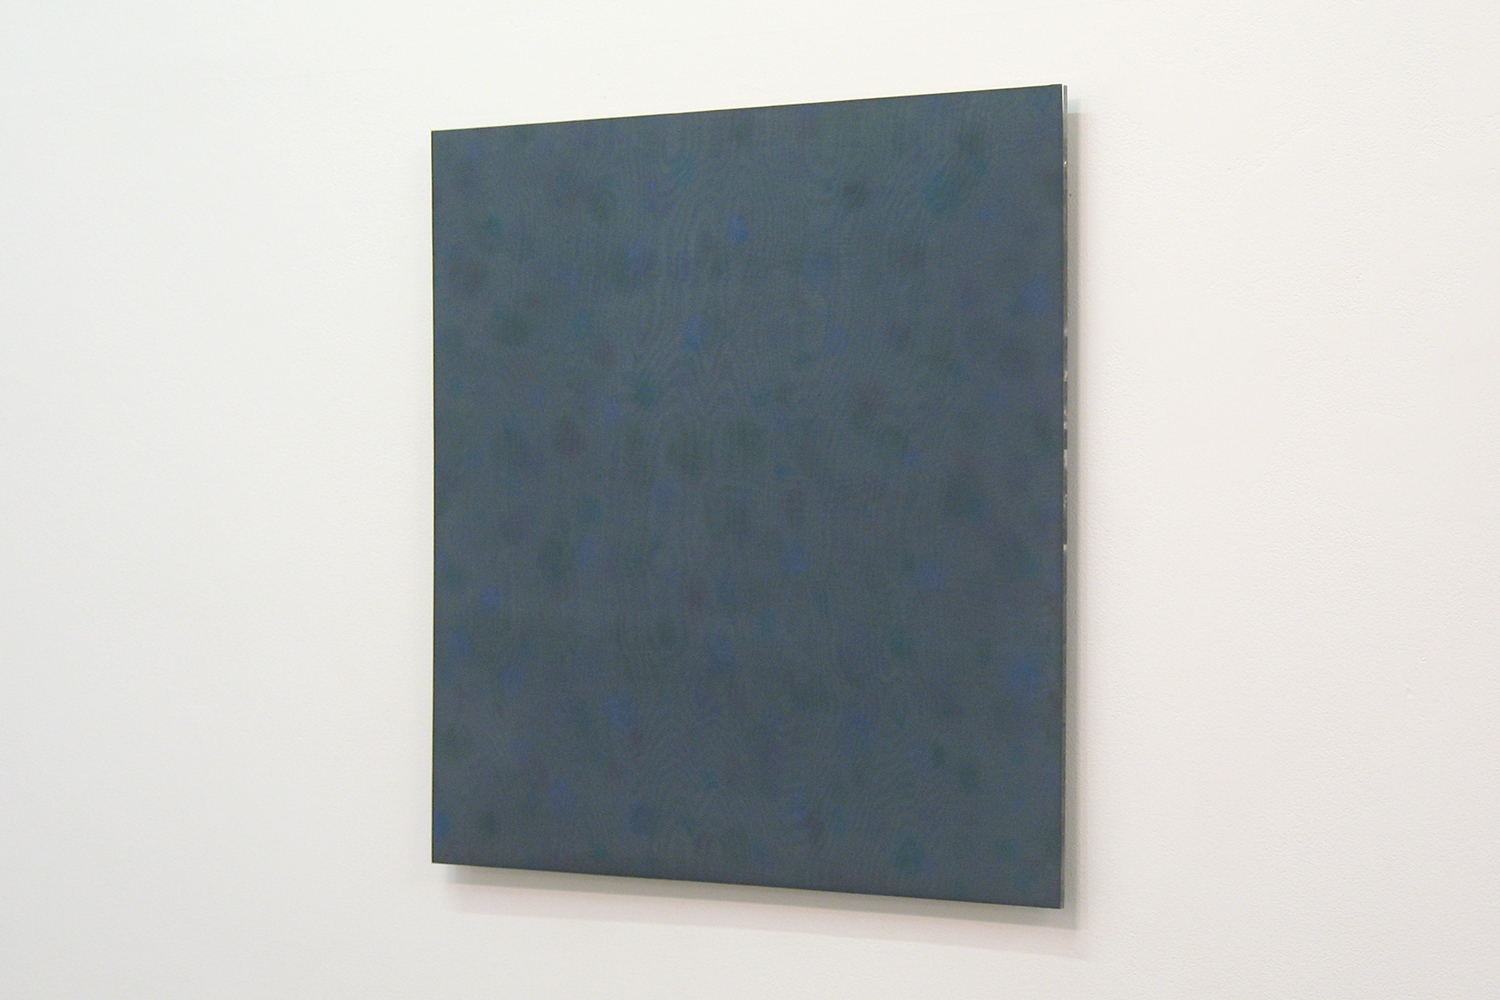 Untitled C|Acrylic board, stainless steel sheet, glass organdy, acrylic paint|60 x 60 cm|2011